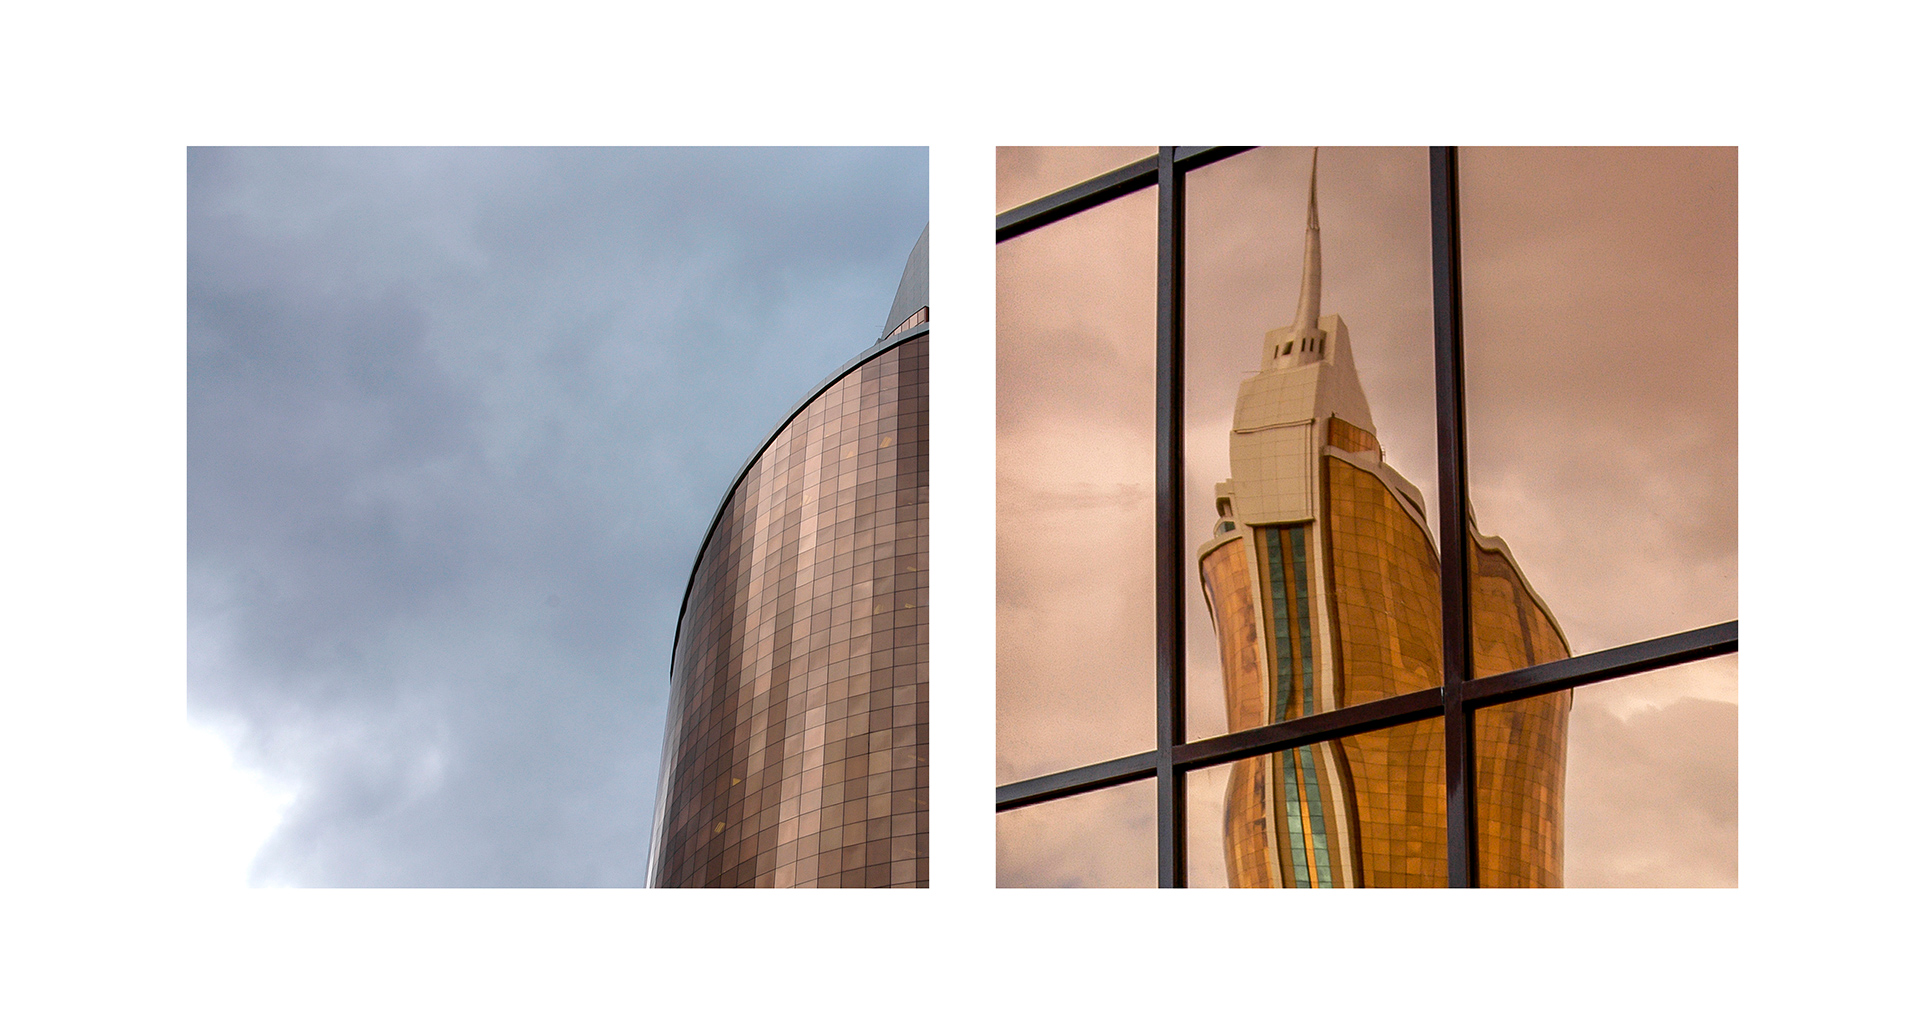 Ministry of Transport and Communications, Astana, Akmola, Nursultan, reflection, architecture, Kazakhstan